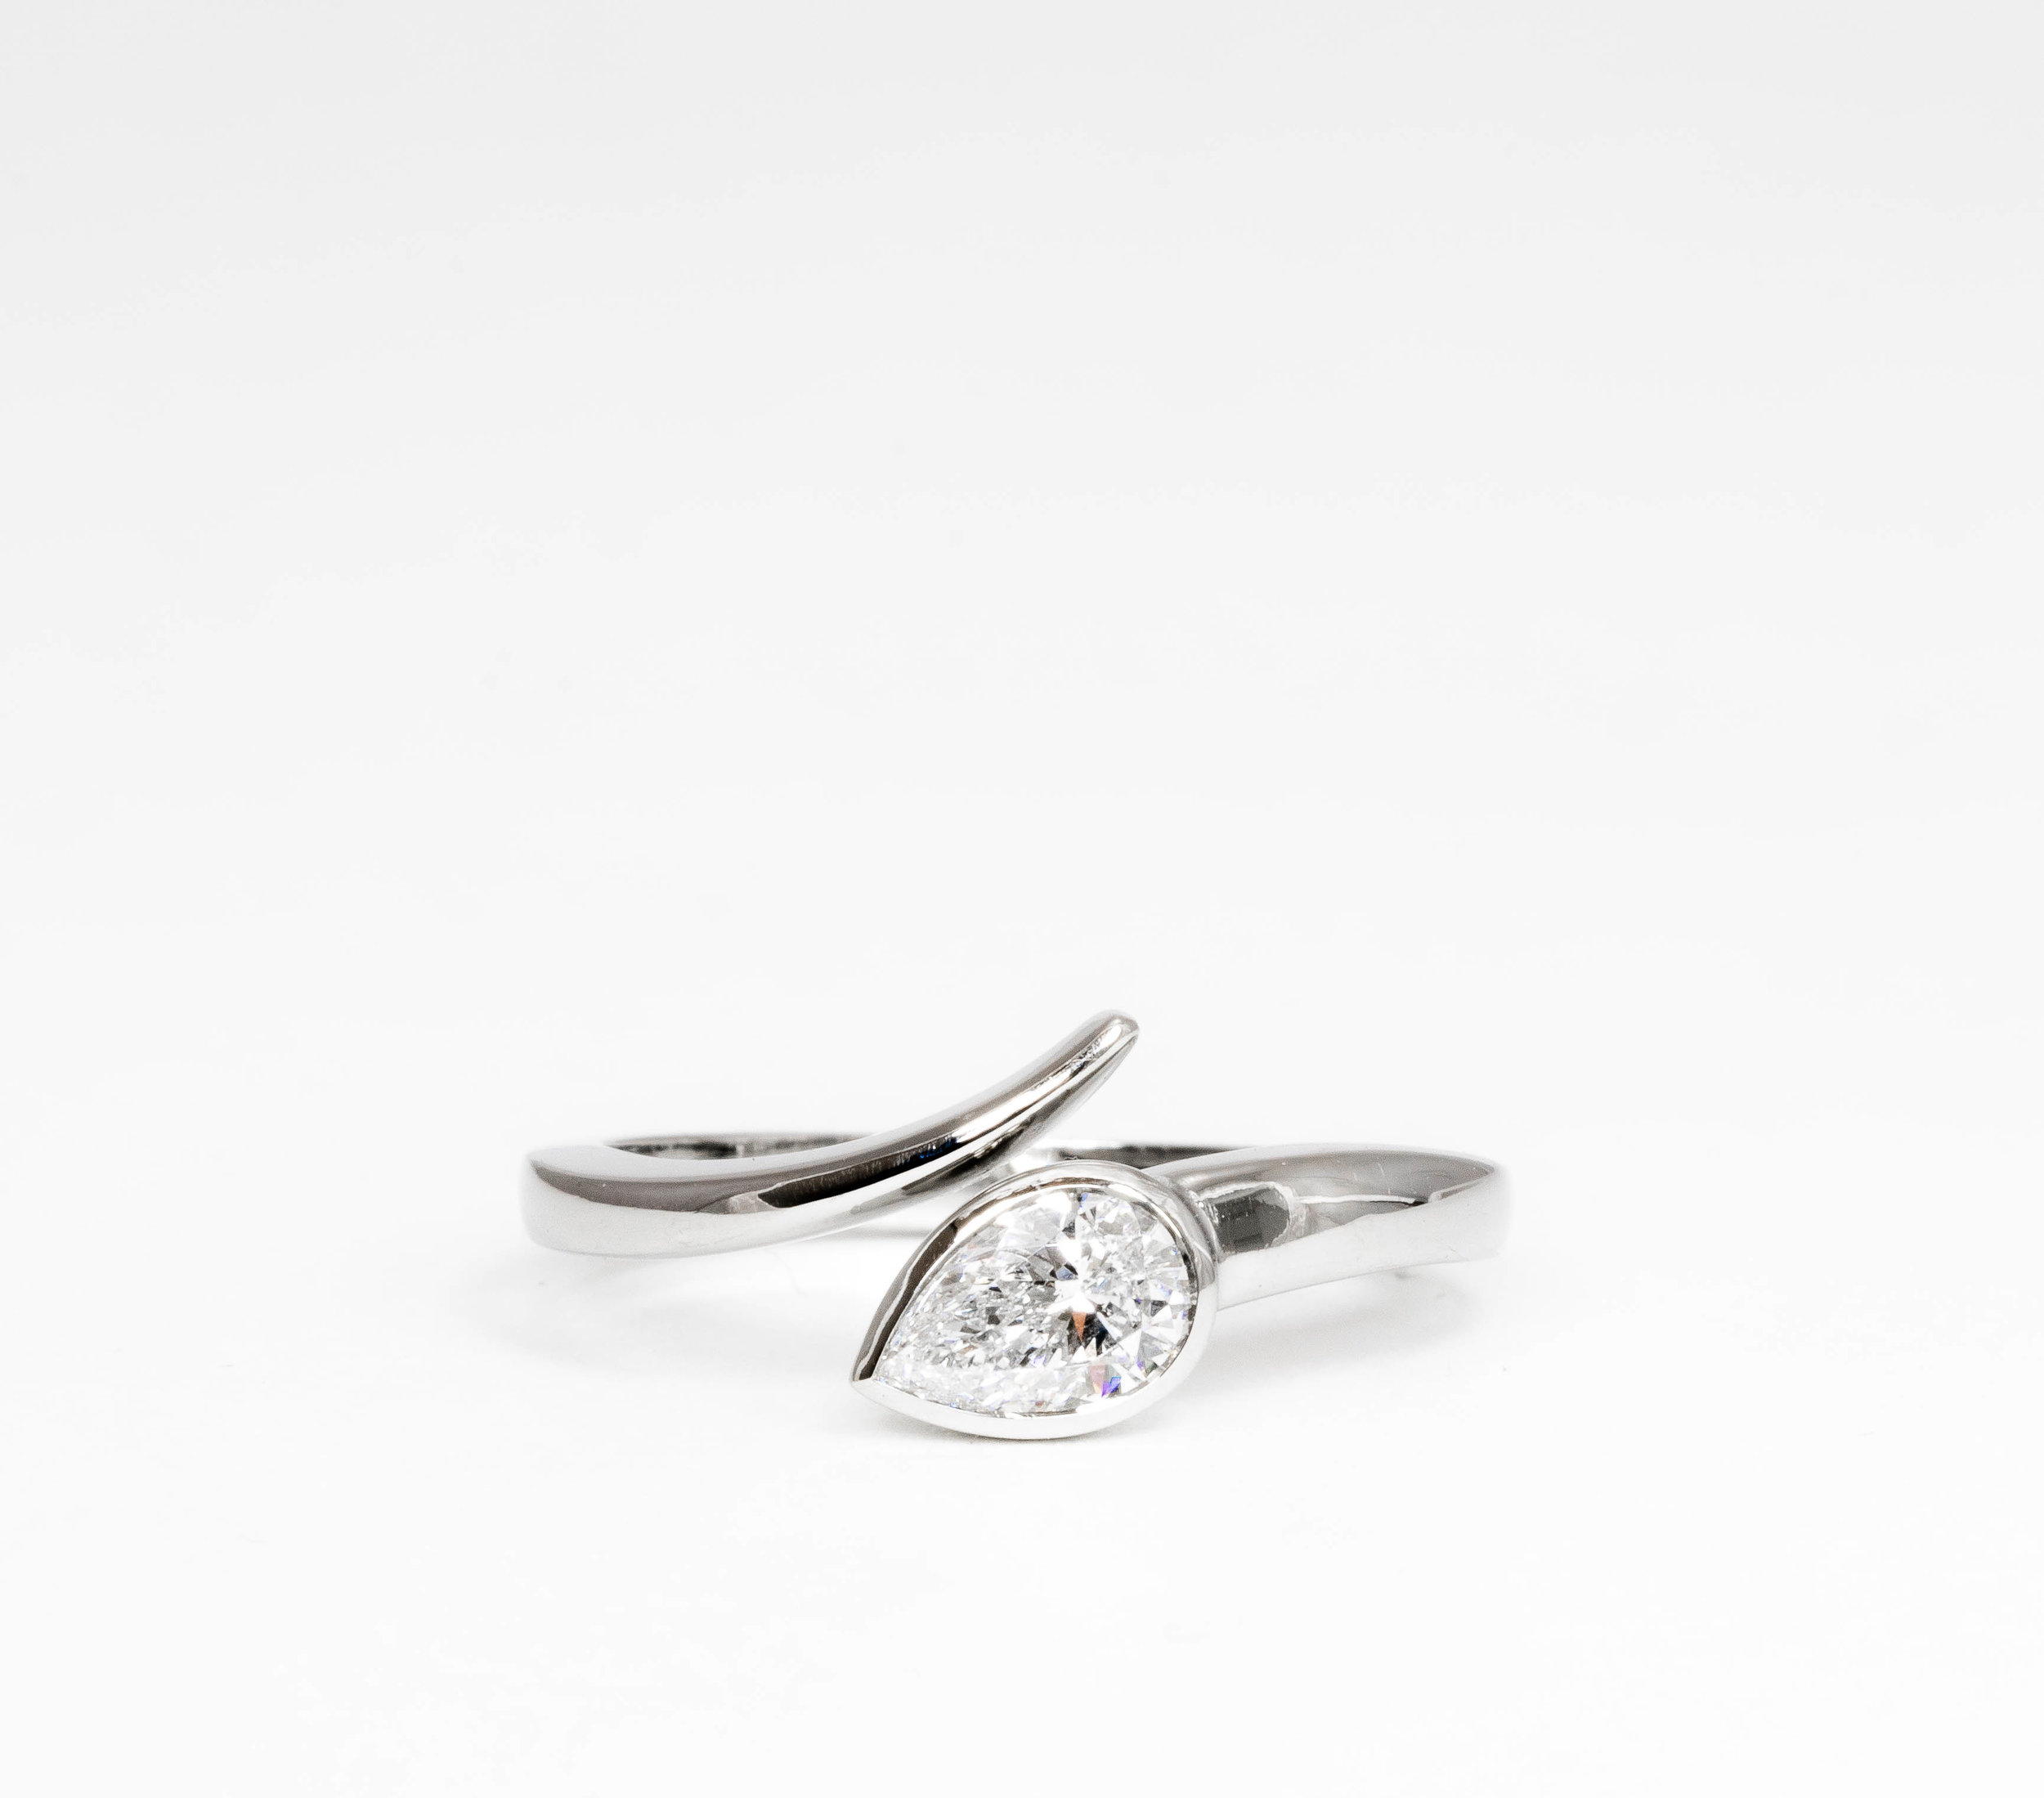 Copy of Platinum mounted pear shaped diamond, rub-over set twist ring. Made in Chichester, England.